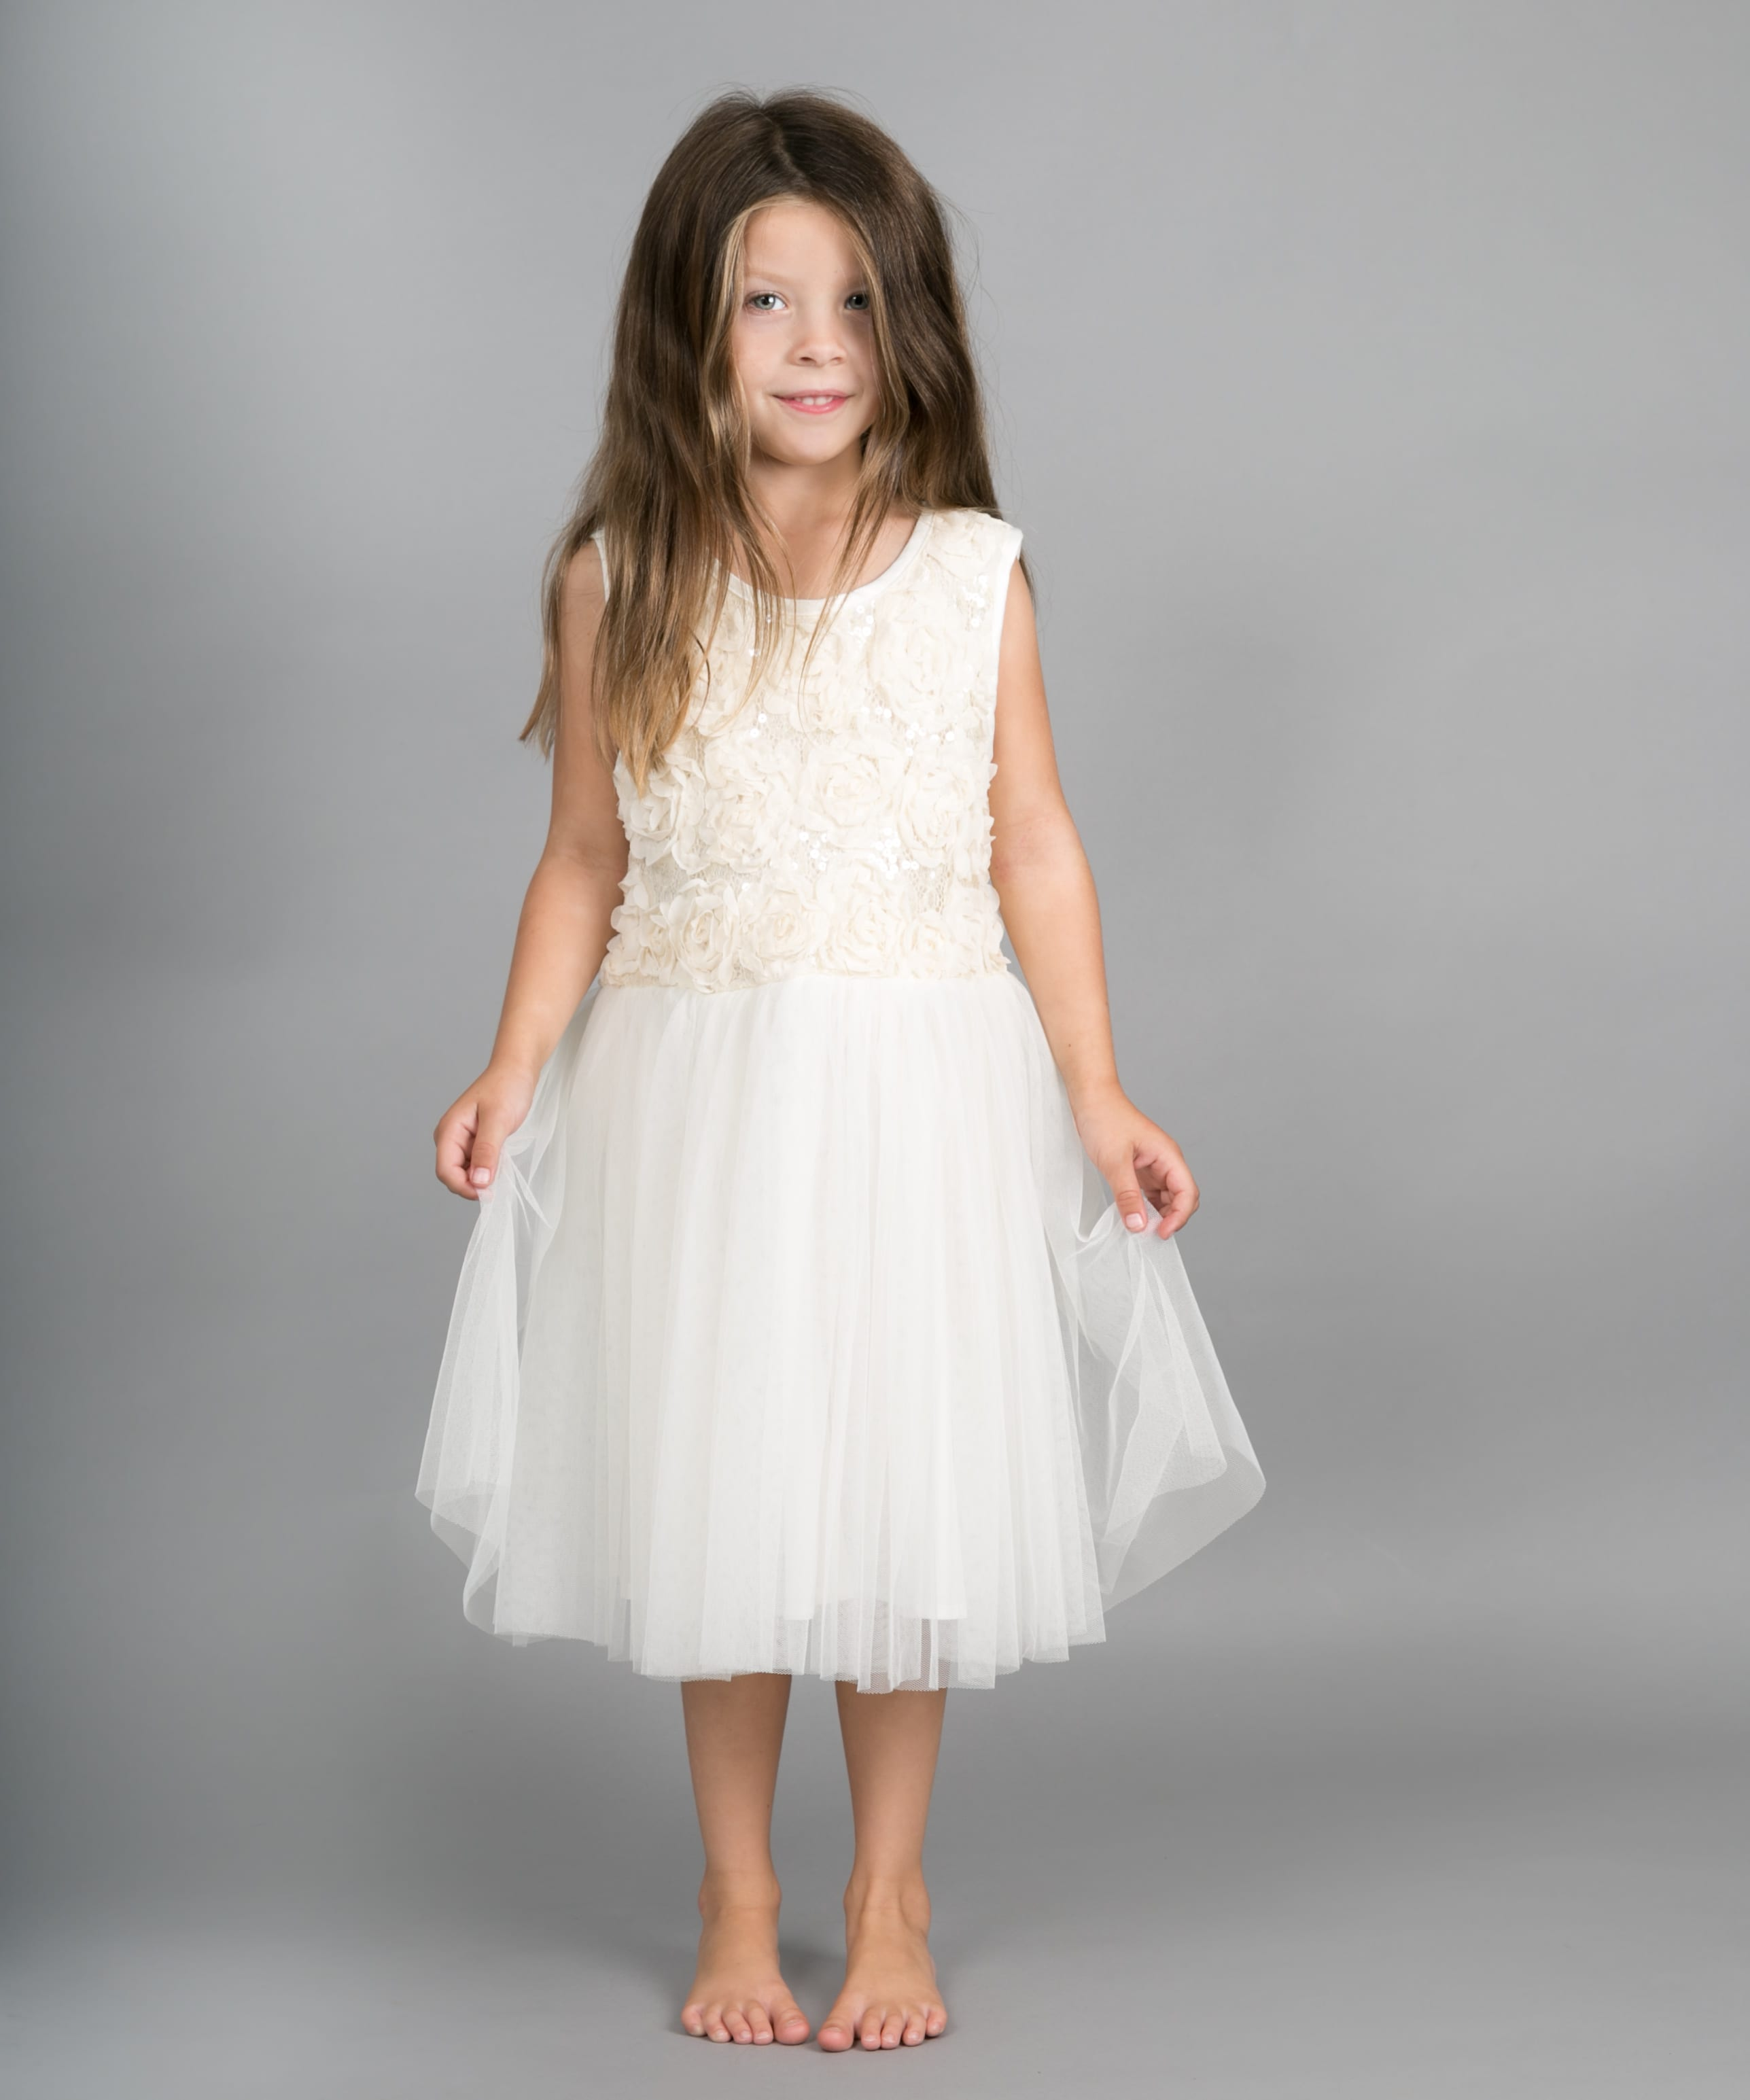 girl studio photoshoot family photographer St Albans Harpenden